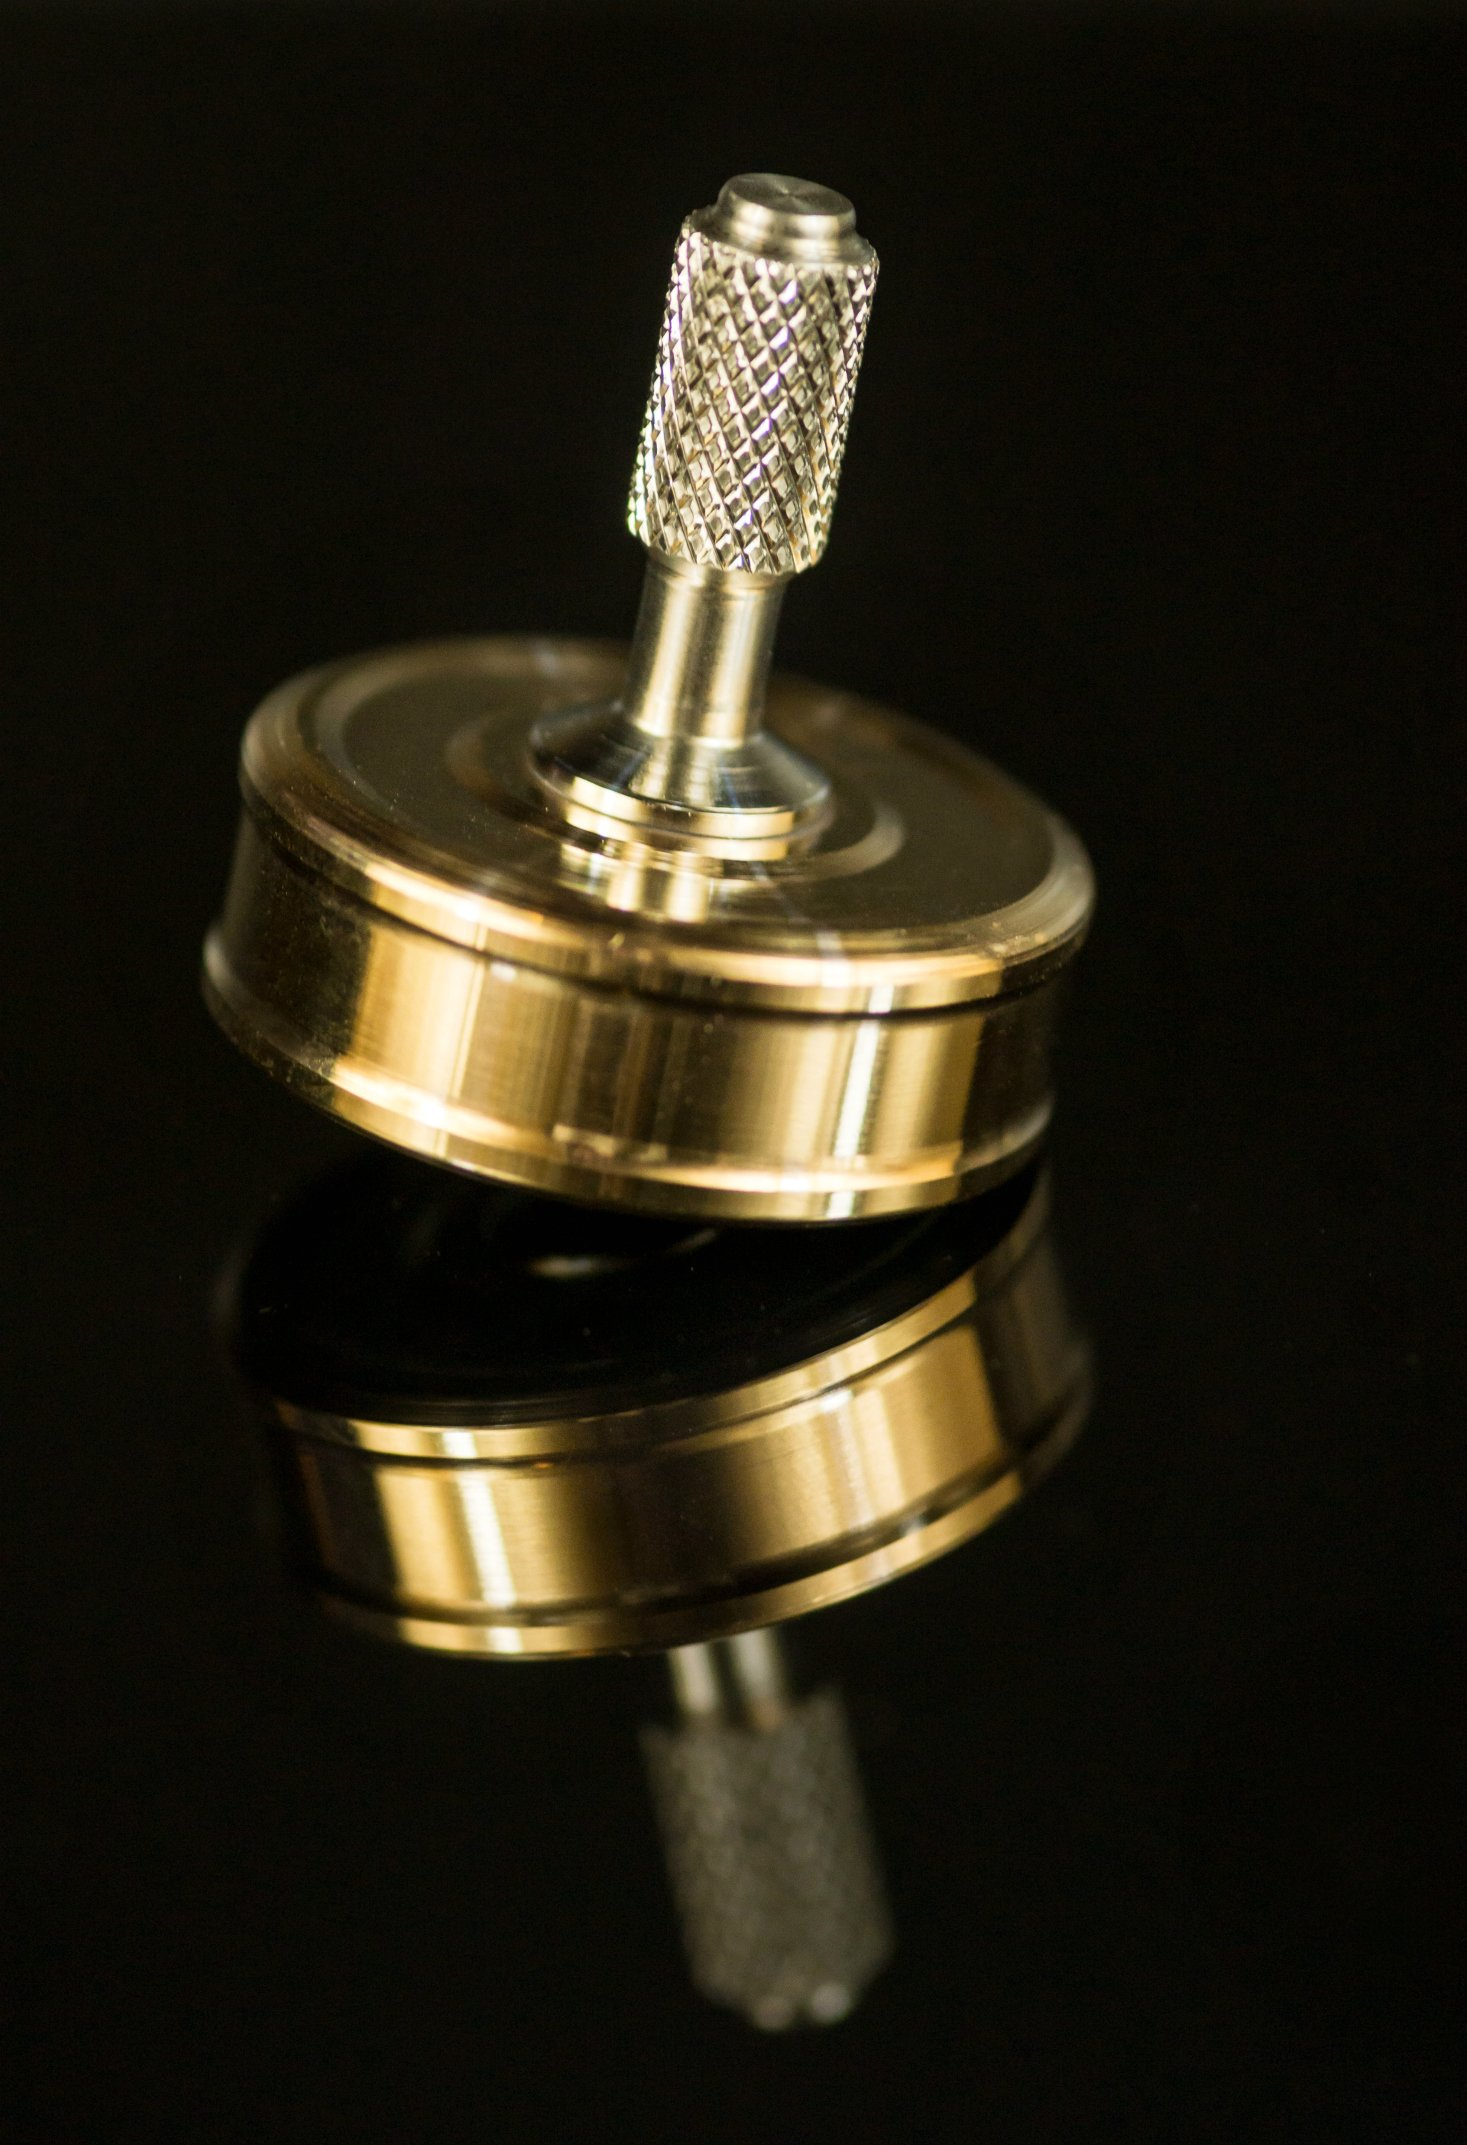 Bronze Pocket Top Precision Spinning Desk Toy for a Hand Made High End Collection by RCS ProFab INC. (Image #7)